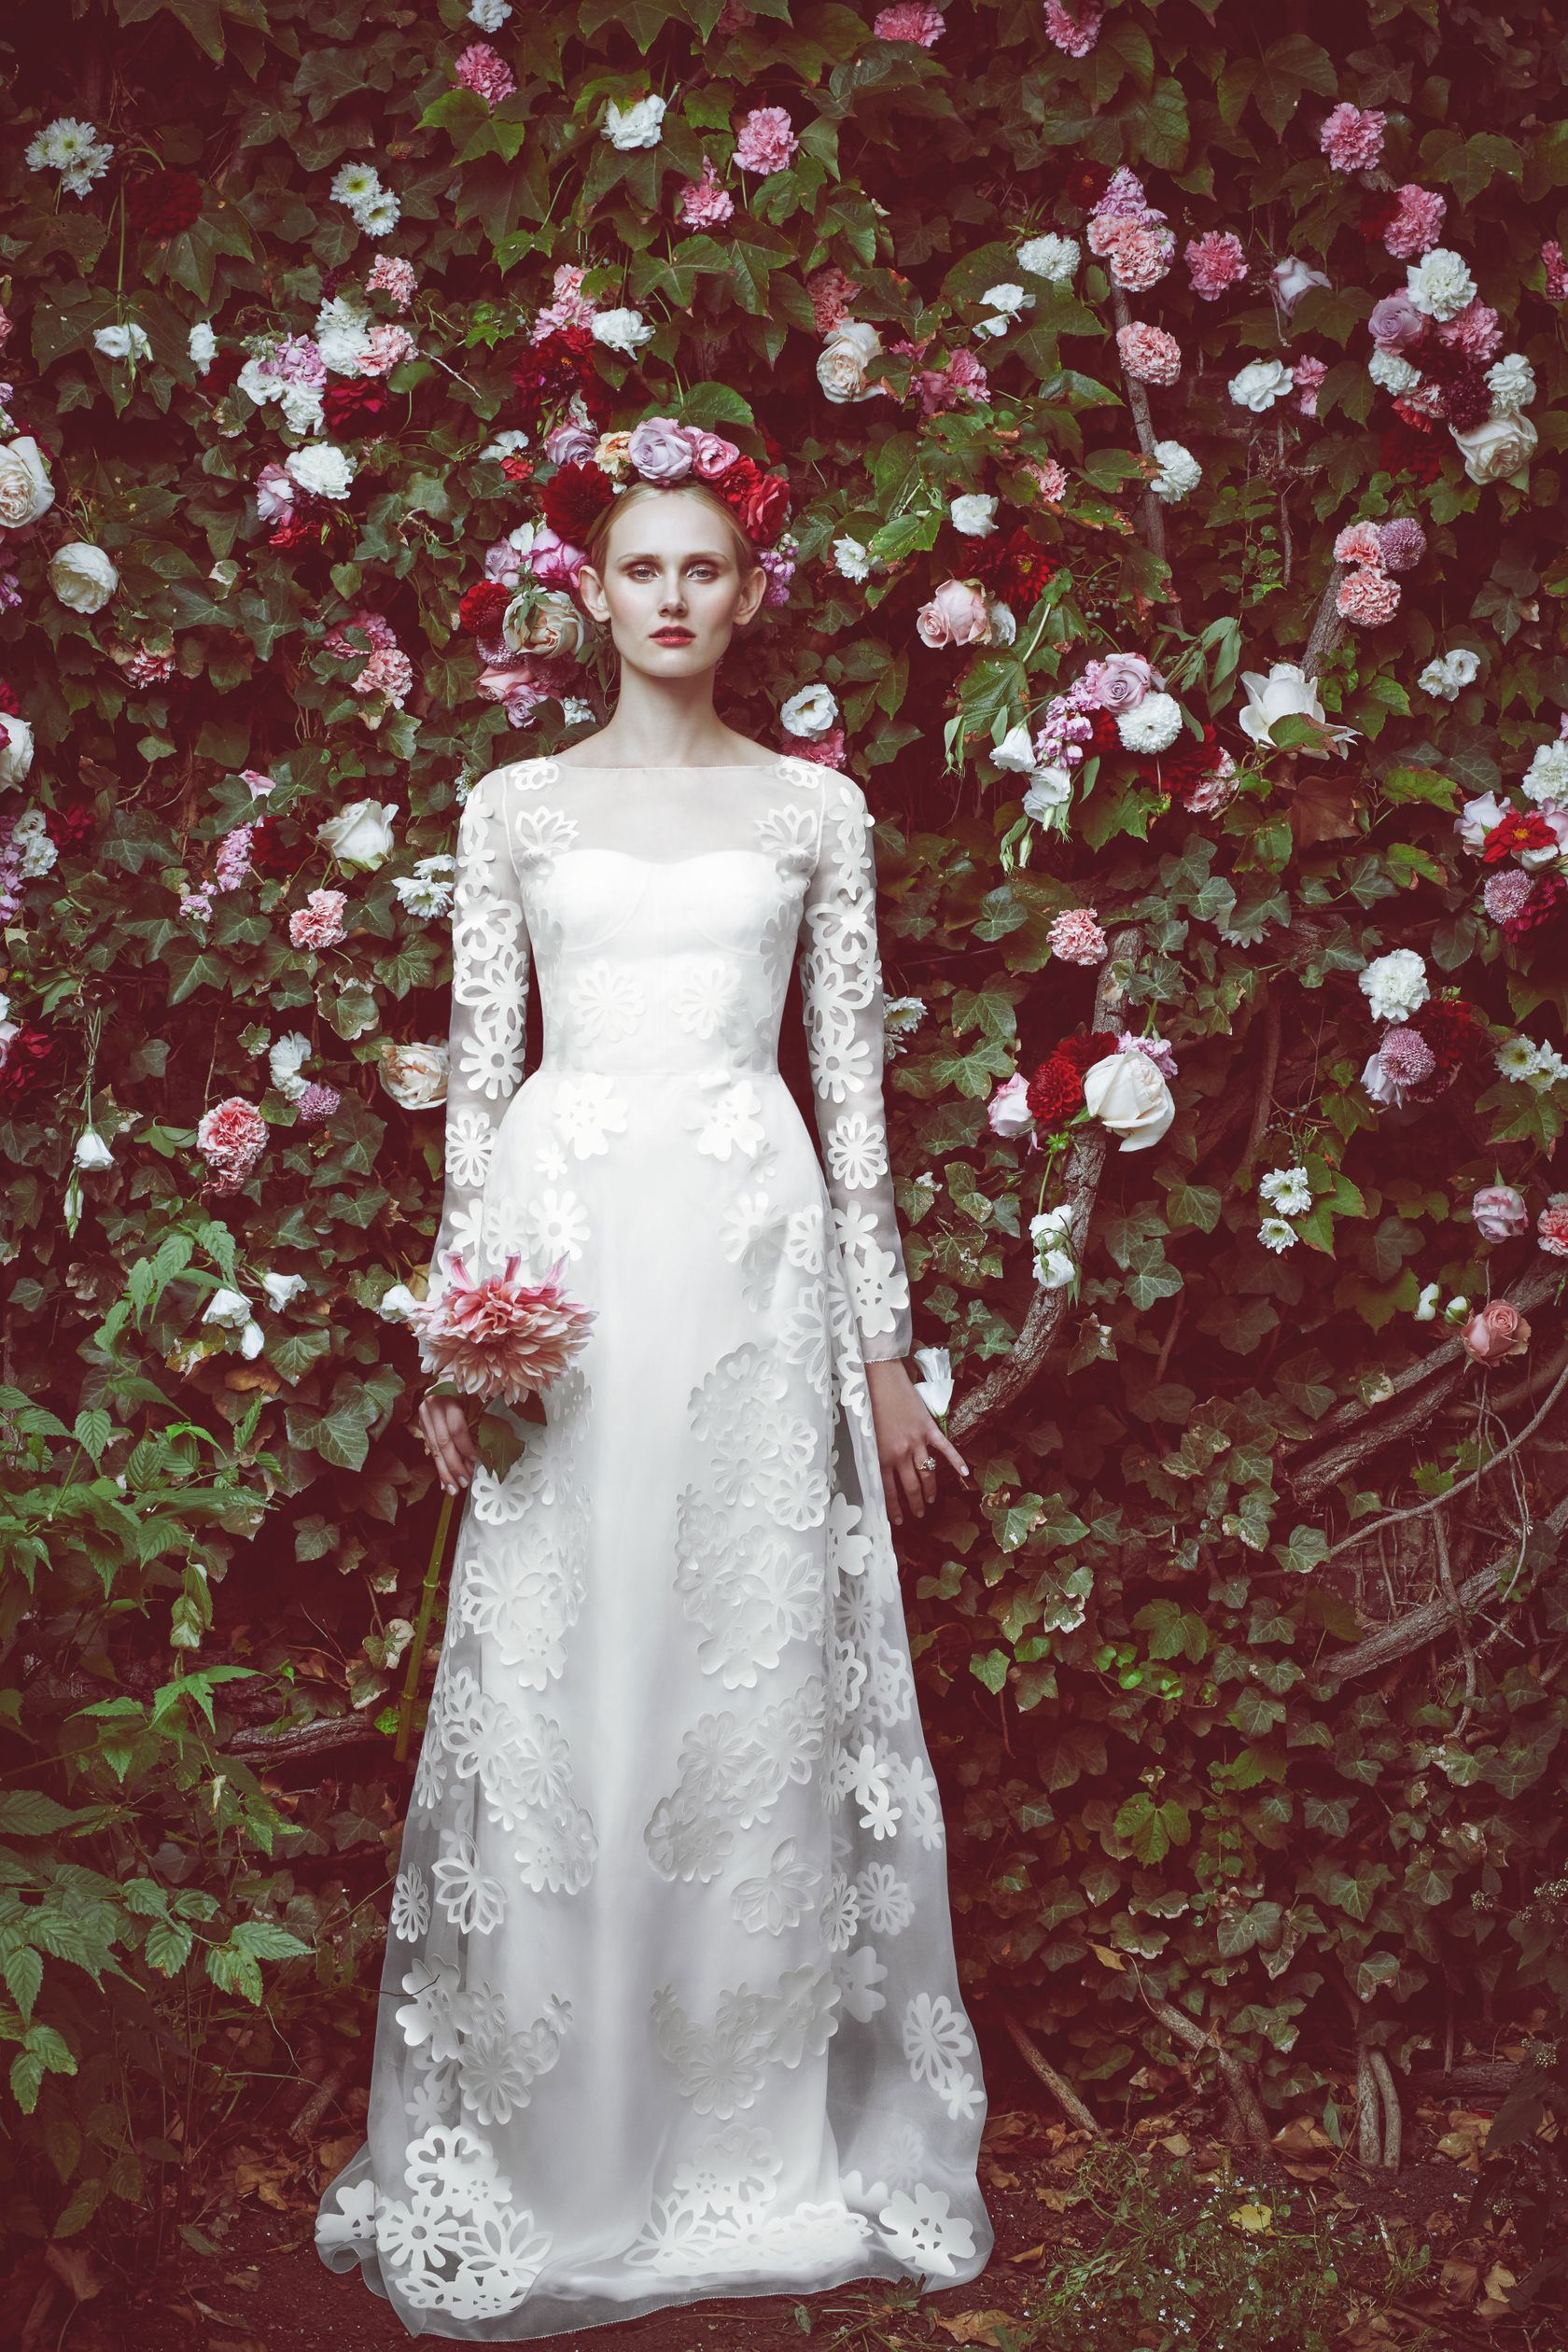 Stone Fox Bride x Honor - 18 of the Best Gowns From Bridal Fashion ...